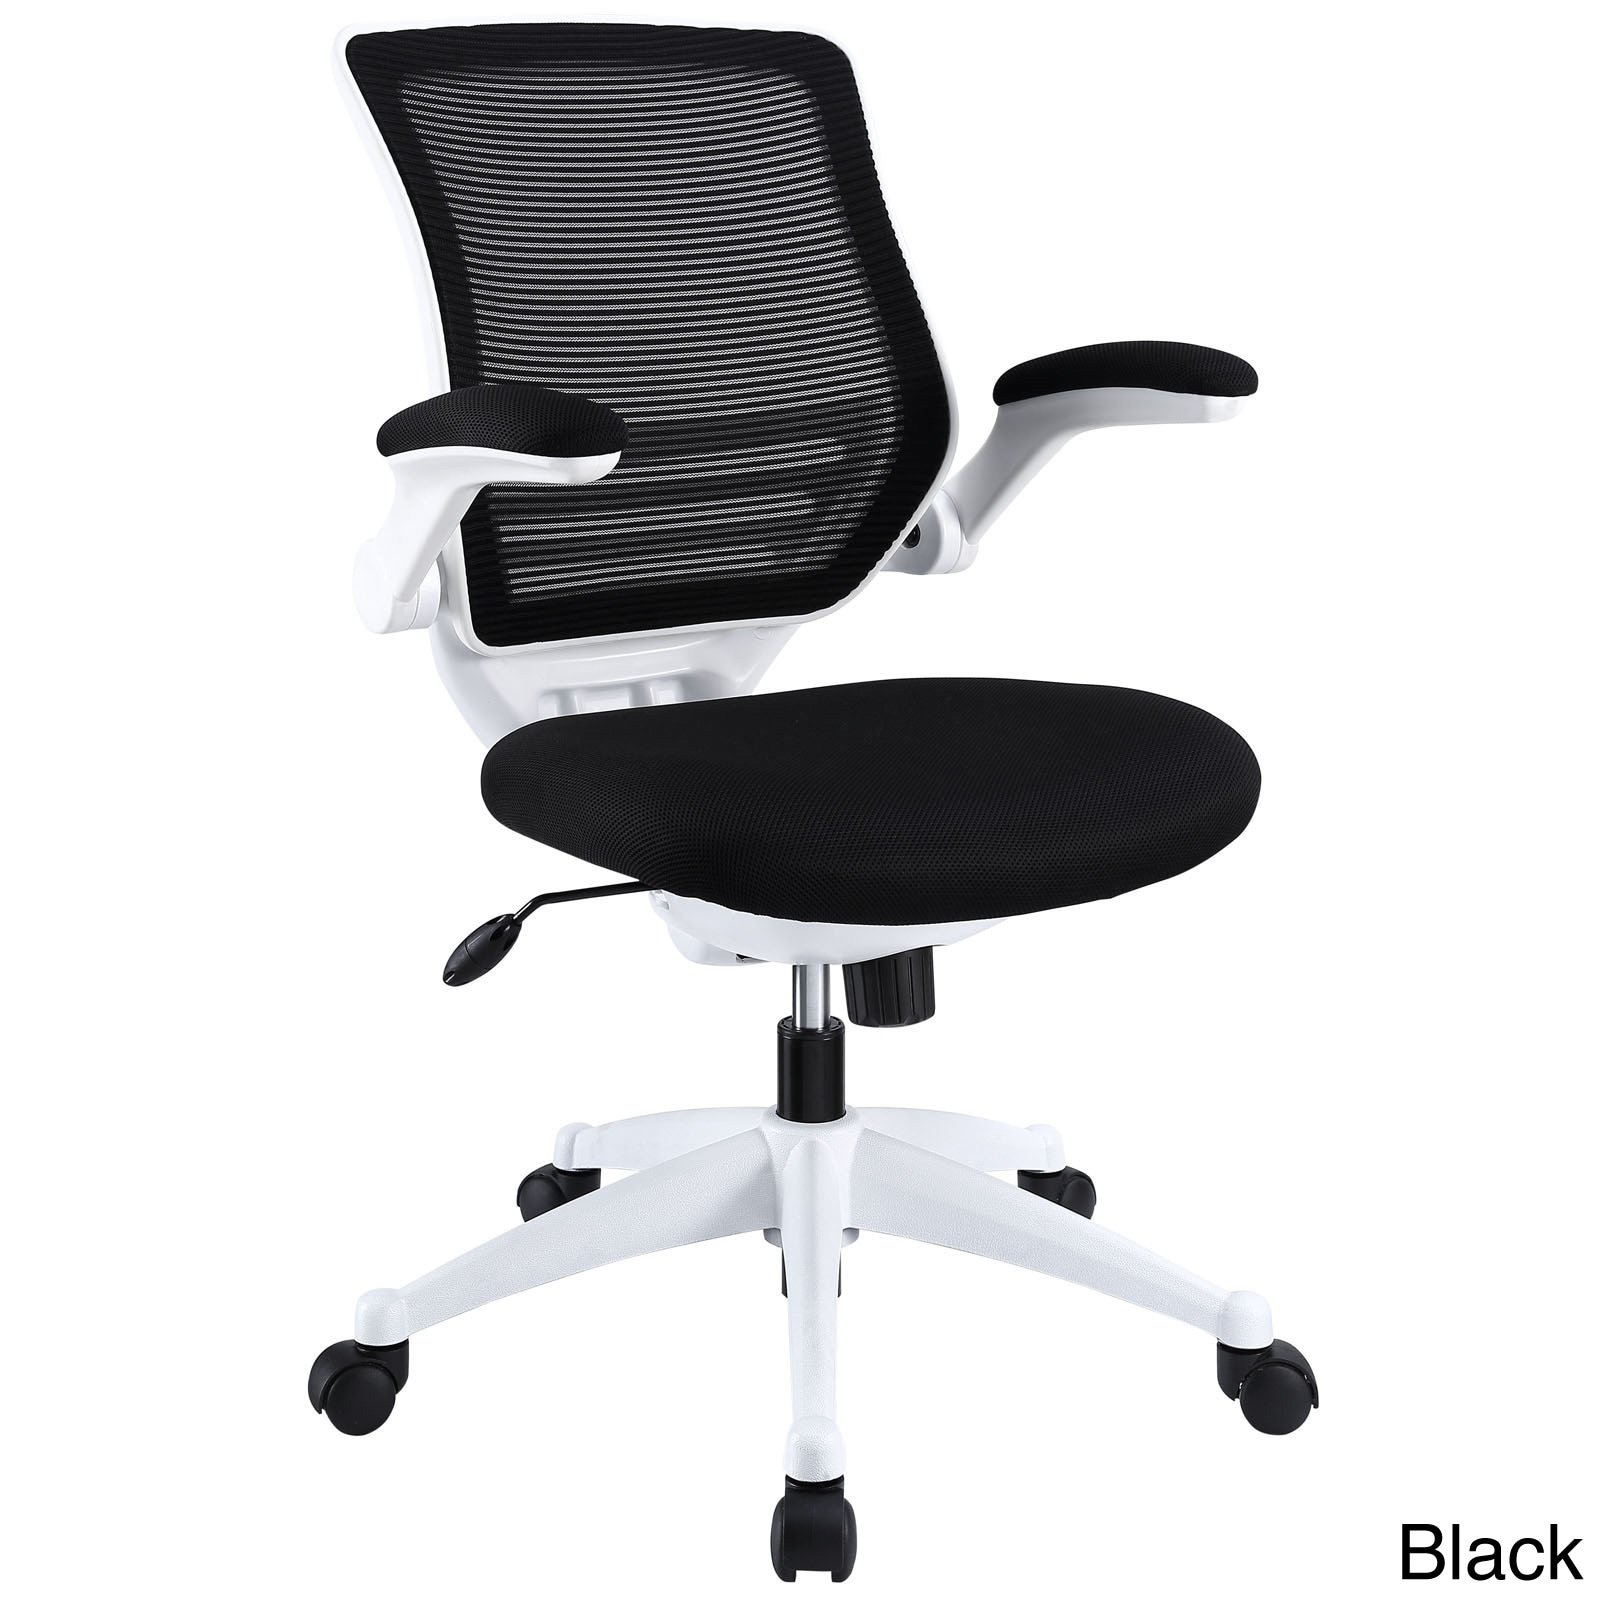 home white office gray chair p gry the base modway edge depot eei chairs in